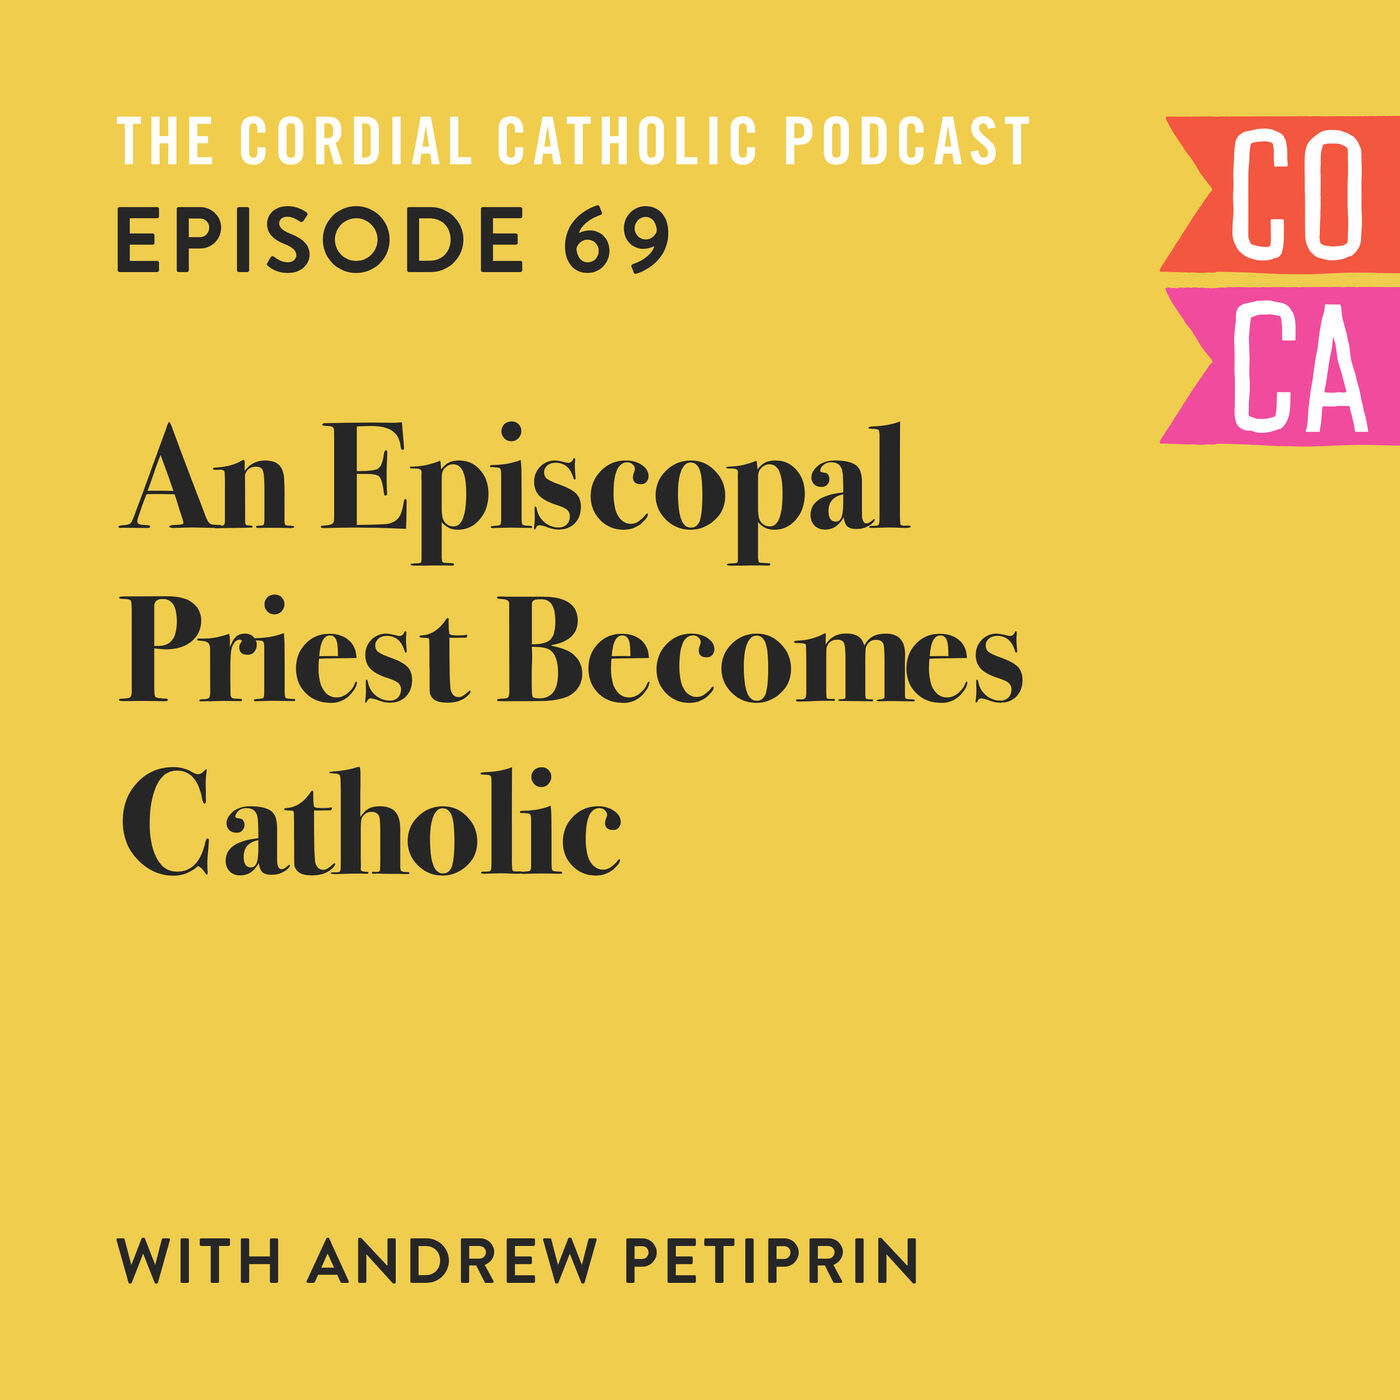 069: An Episcopal Priest Becomes Catholic (w/ Andrew Petiprin)